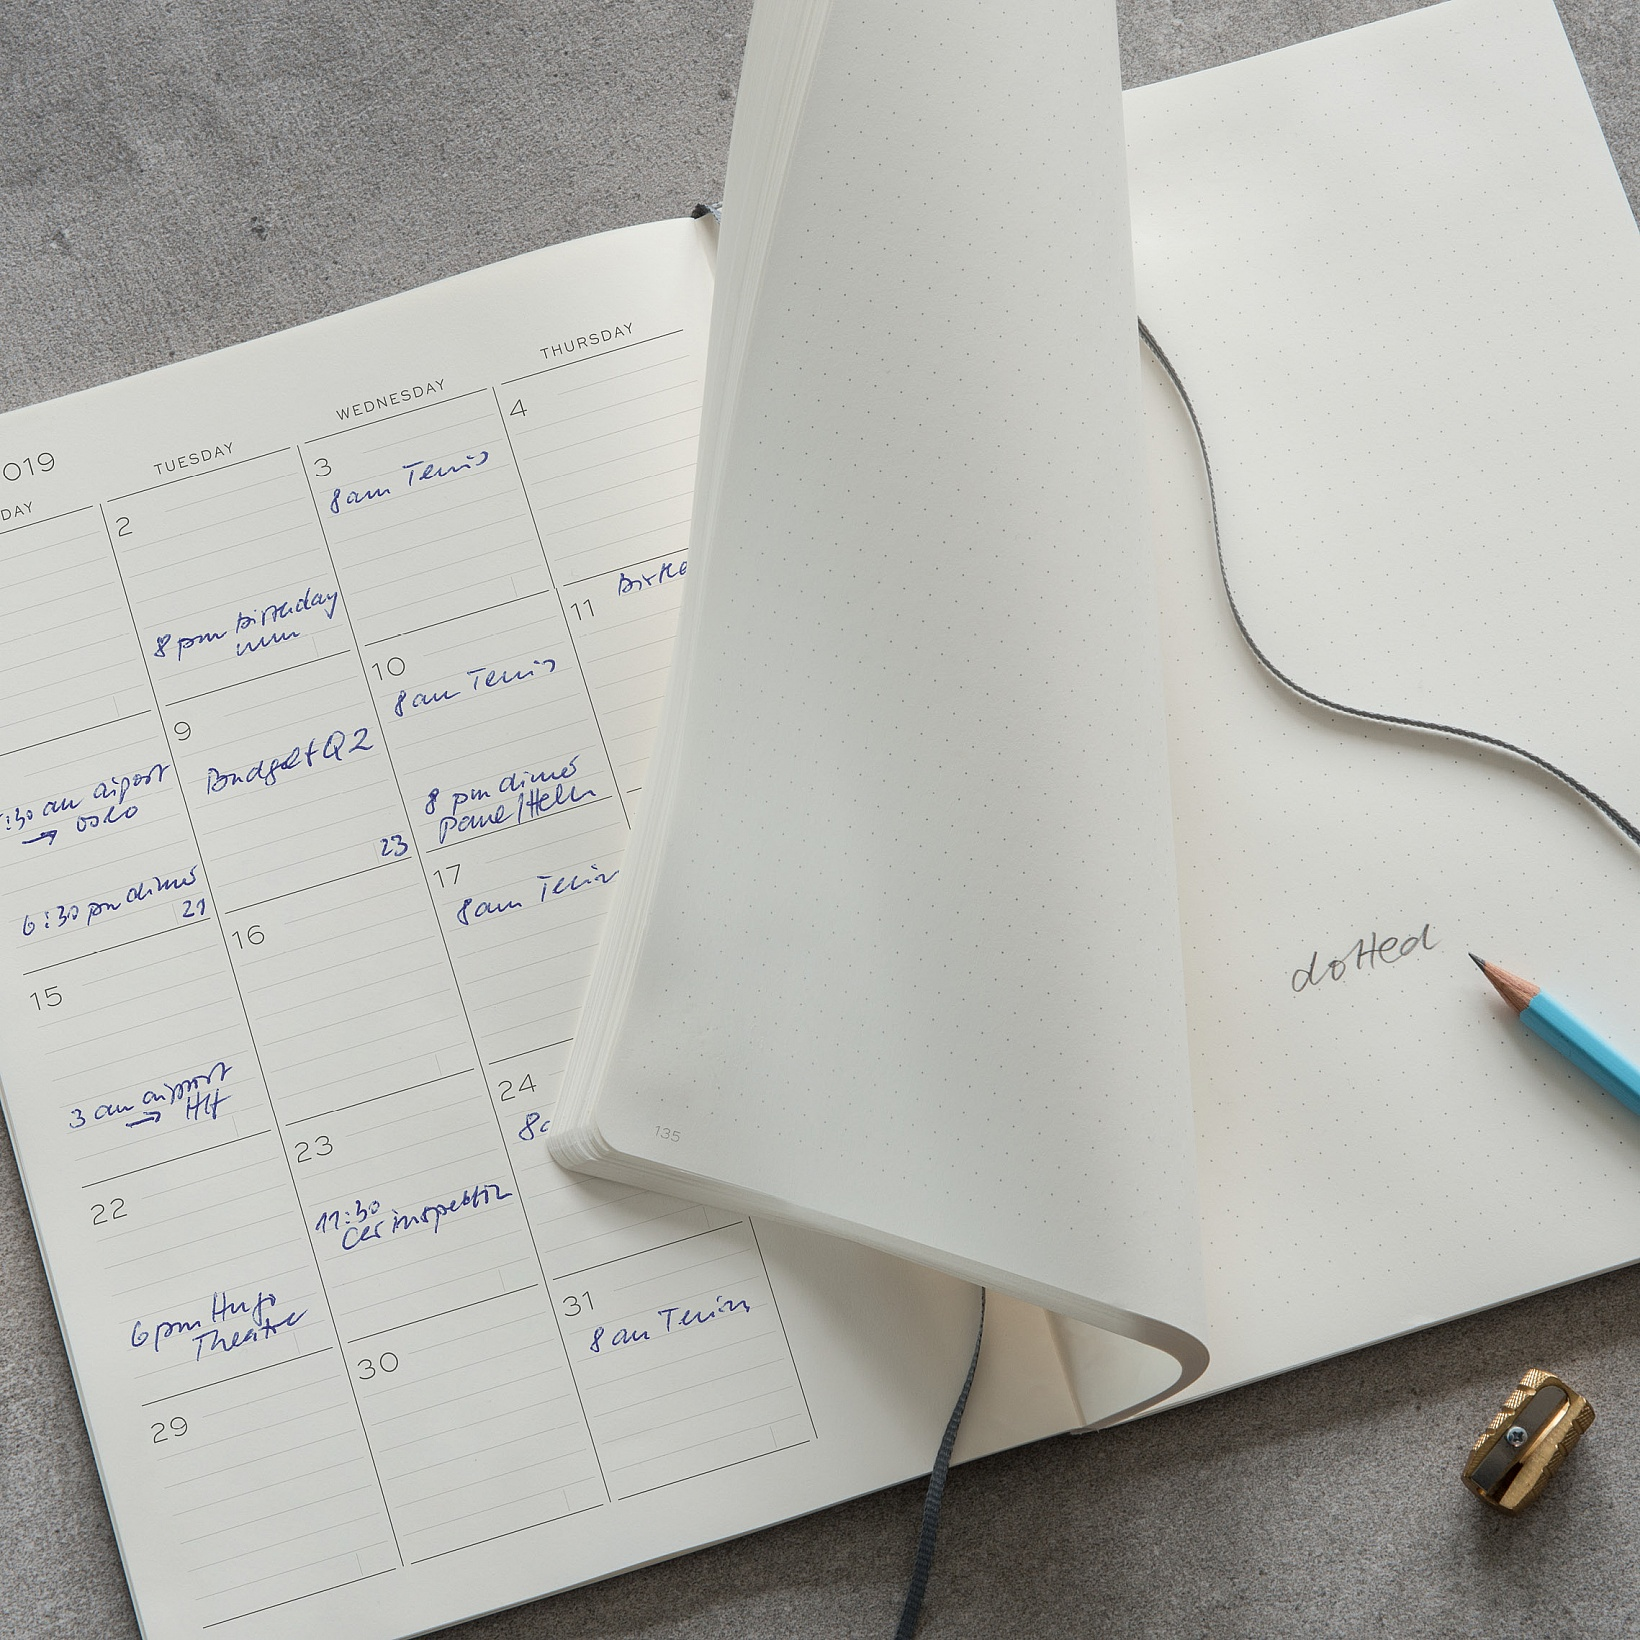 monthly-planner-with-notebook-2019-english-8-3.jpg